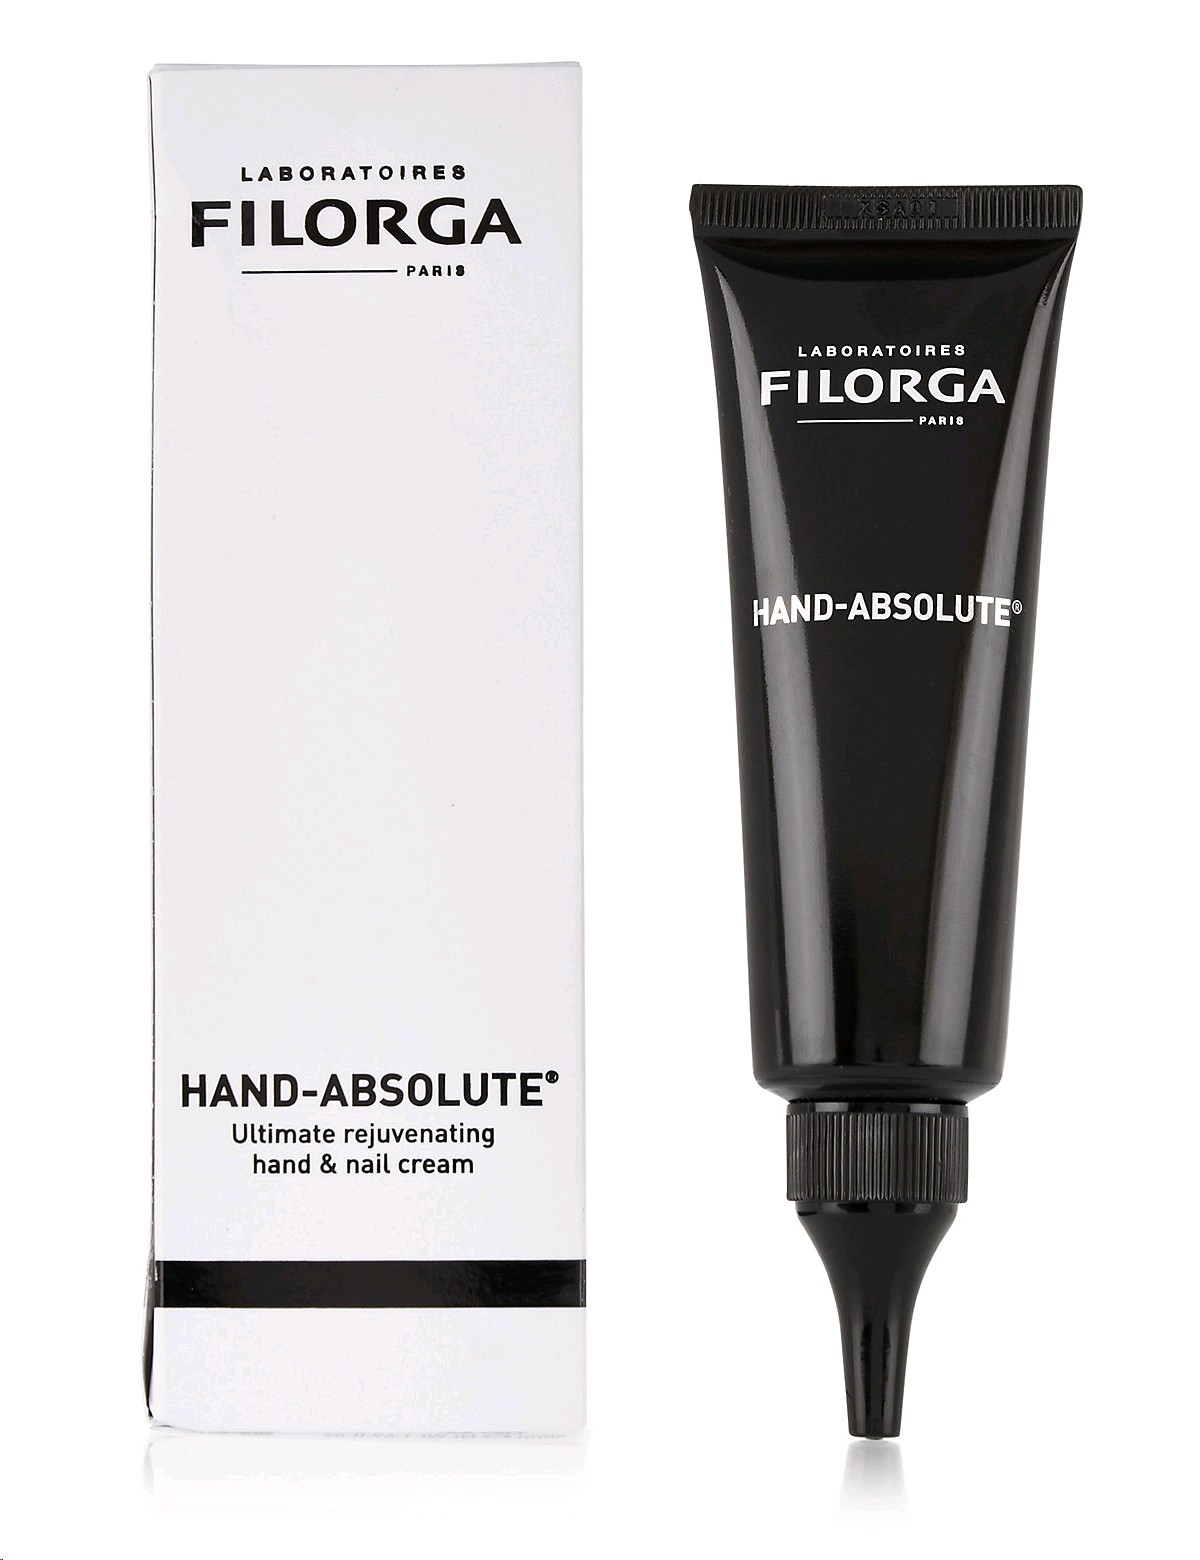 FILORGA CREMA DE MANS HAND ABSOLUTE 50ML